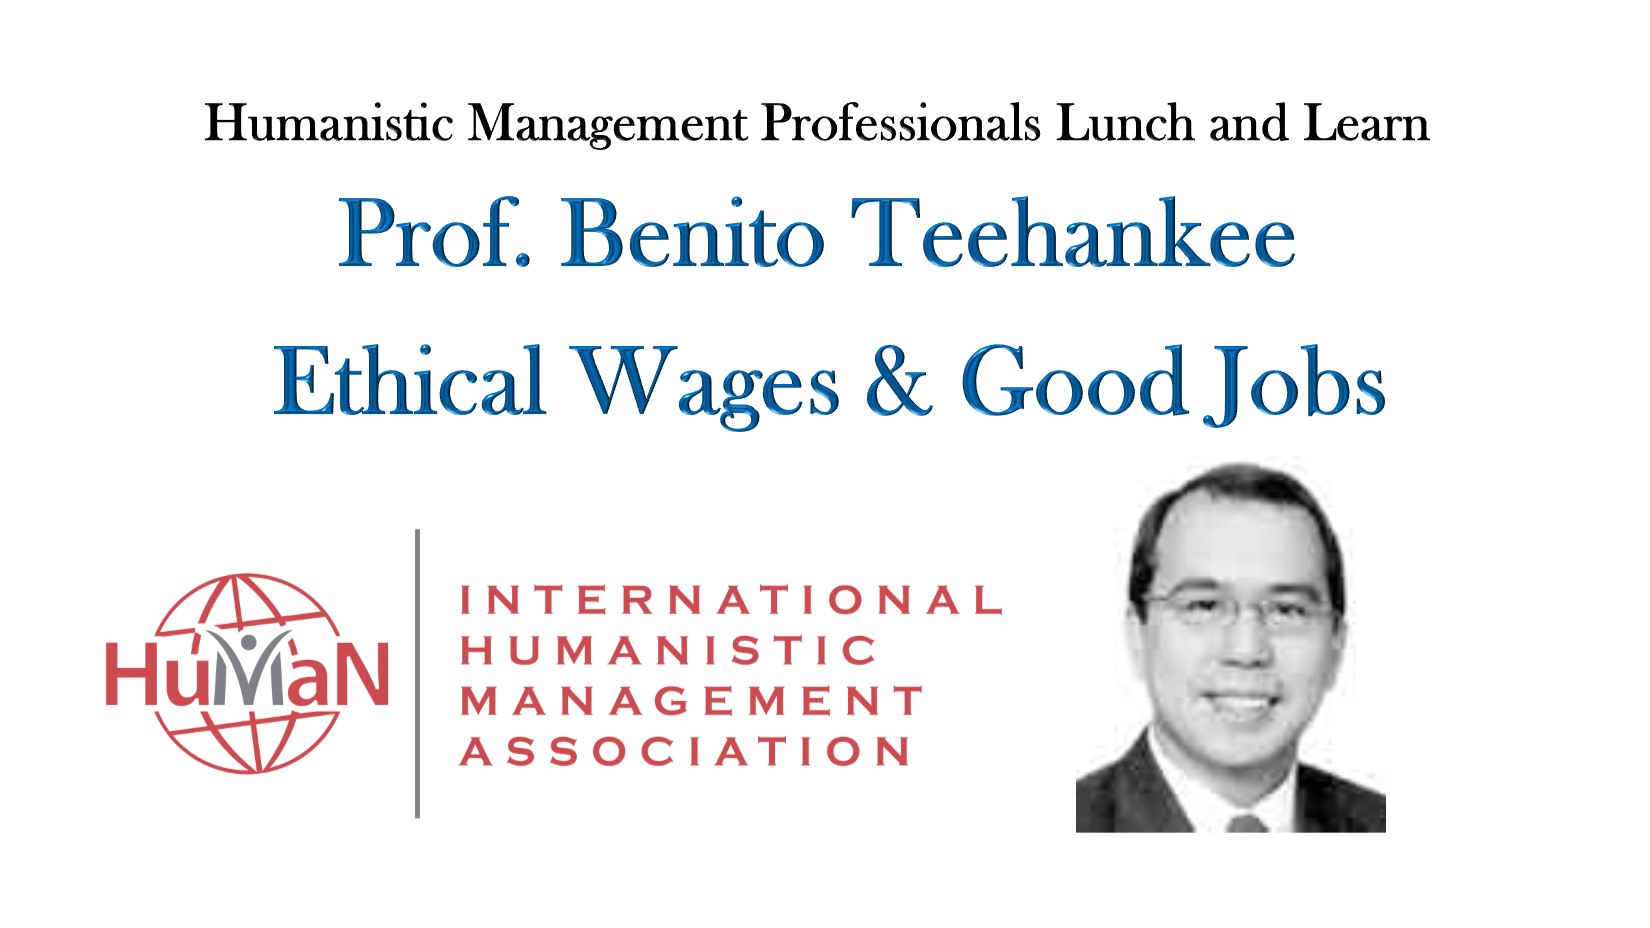 Ethical Wages & Good Jobs – With Prof. Benito Teehankee